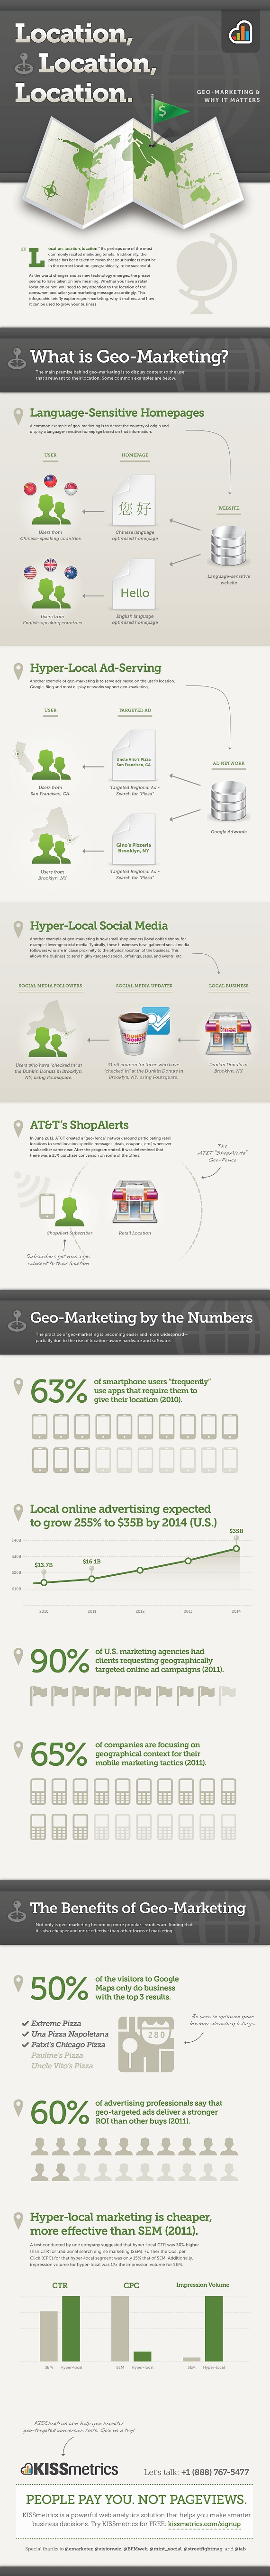 Location, Location, Location - Geo-marketing & Why it Matters